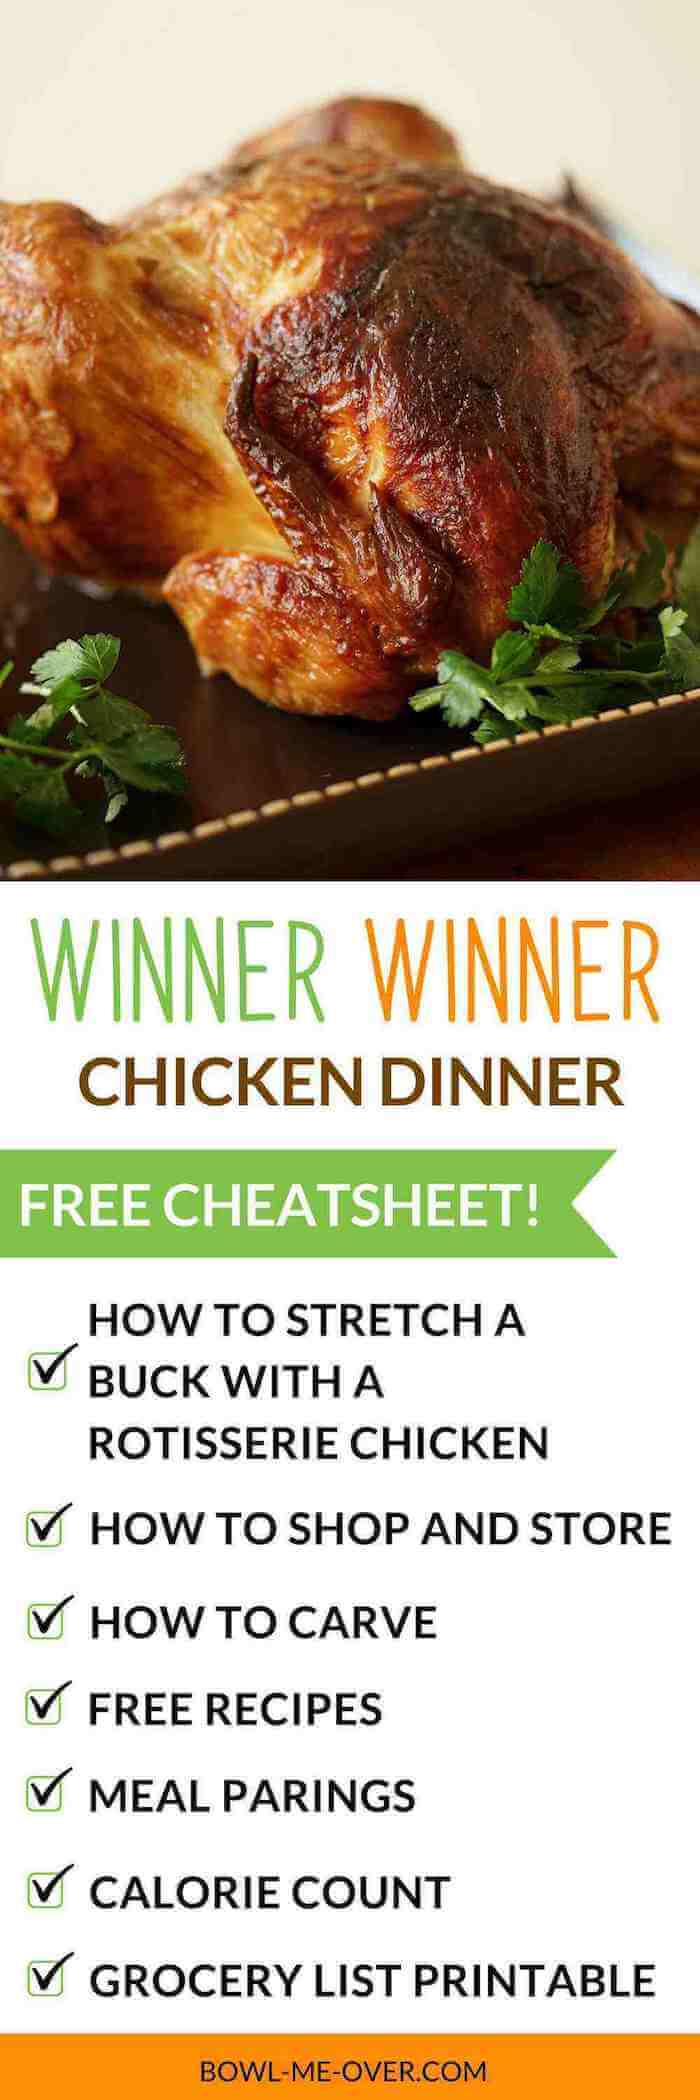 Rotisserie Chicken Cheat Sheet for recipes, meal pairing and